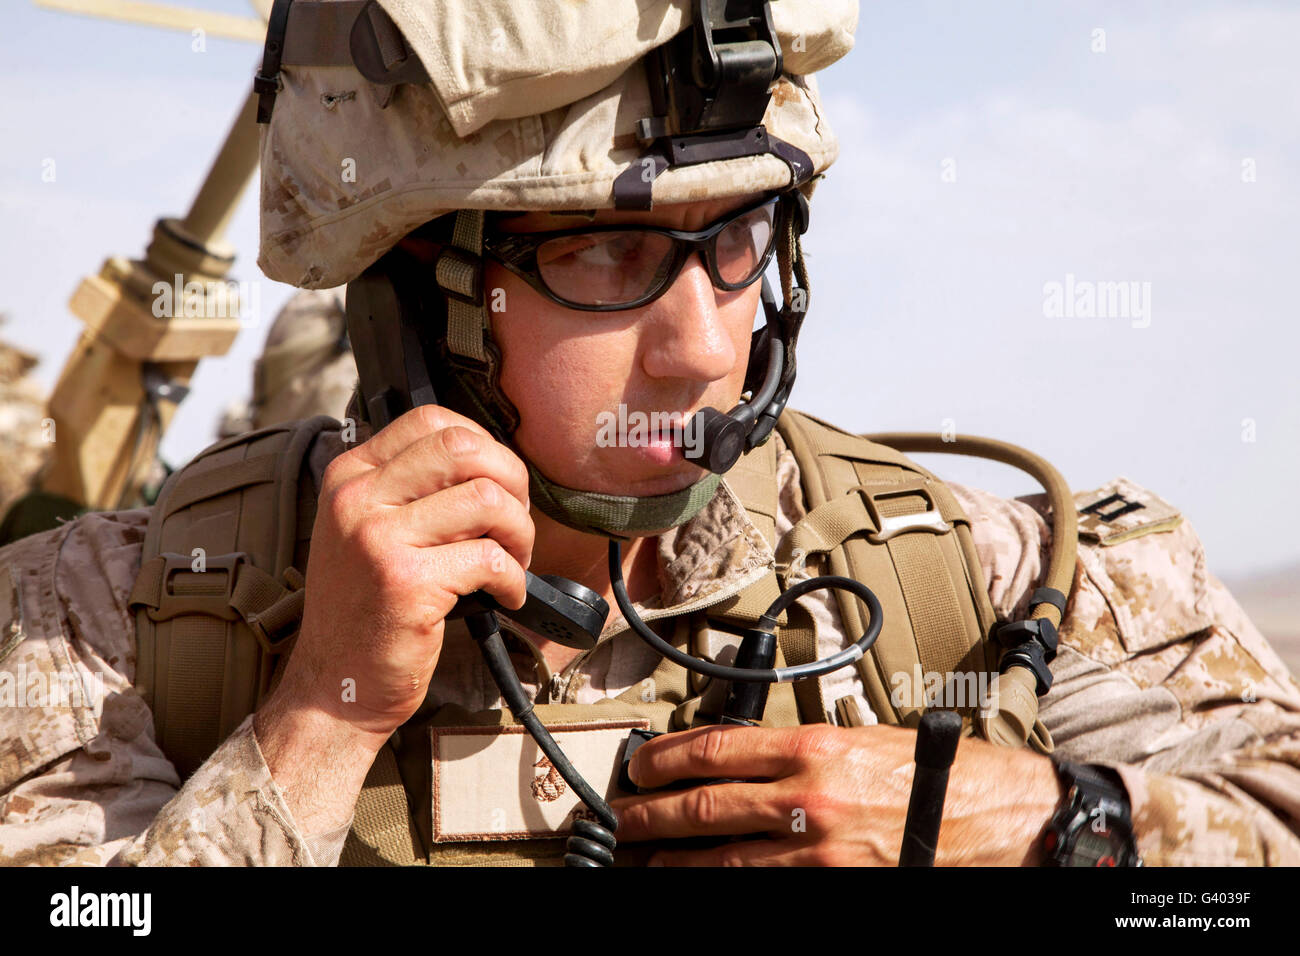 U.S. Marine talks over the radio in Afghanistan. - Stock Image